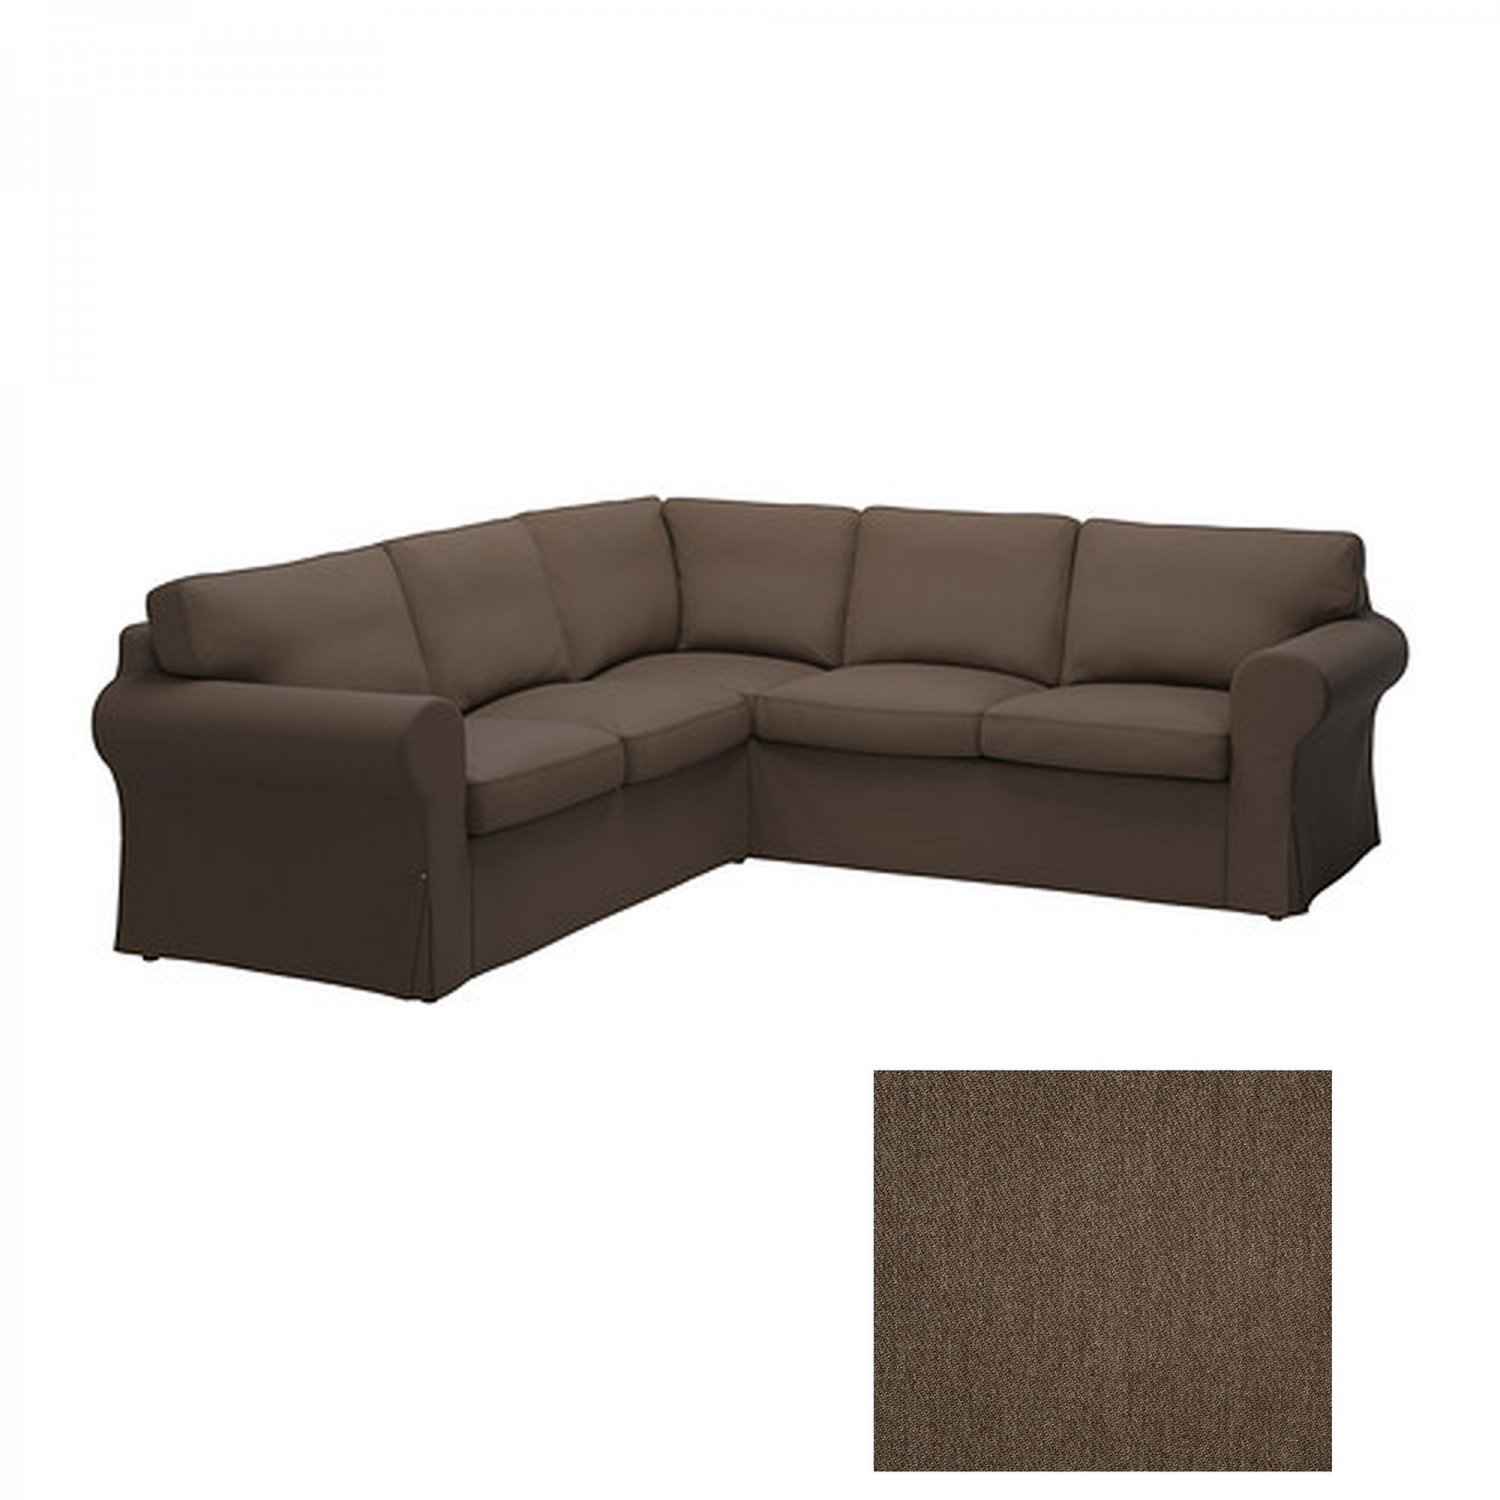 Ikea ektorp 2 2 corner sofa cover slipcover jonsboda brown for Furniture covers